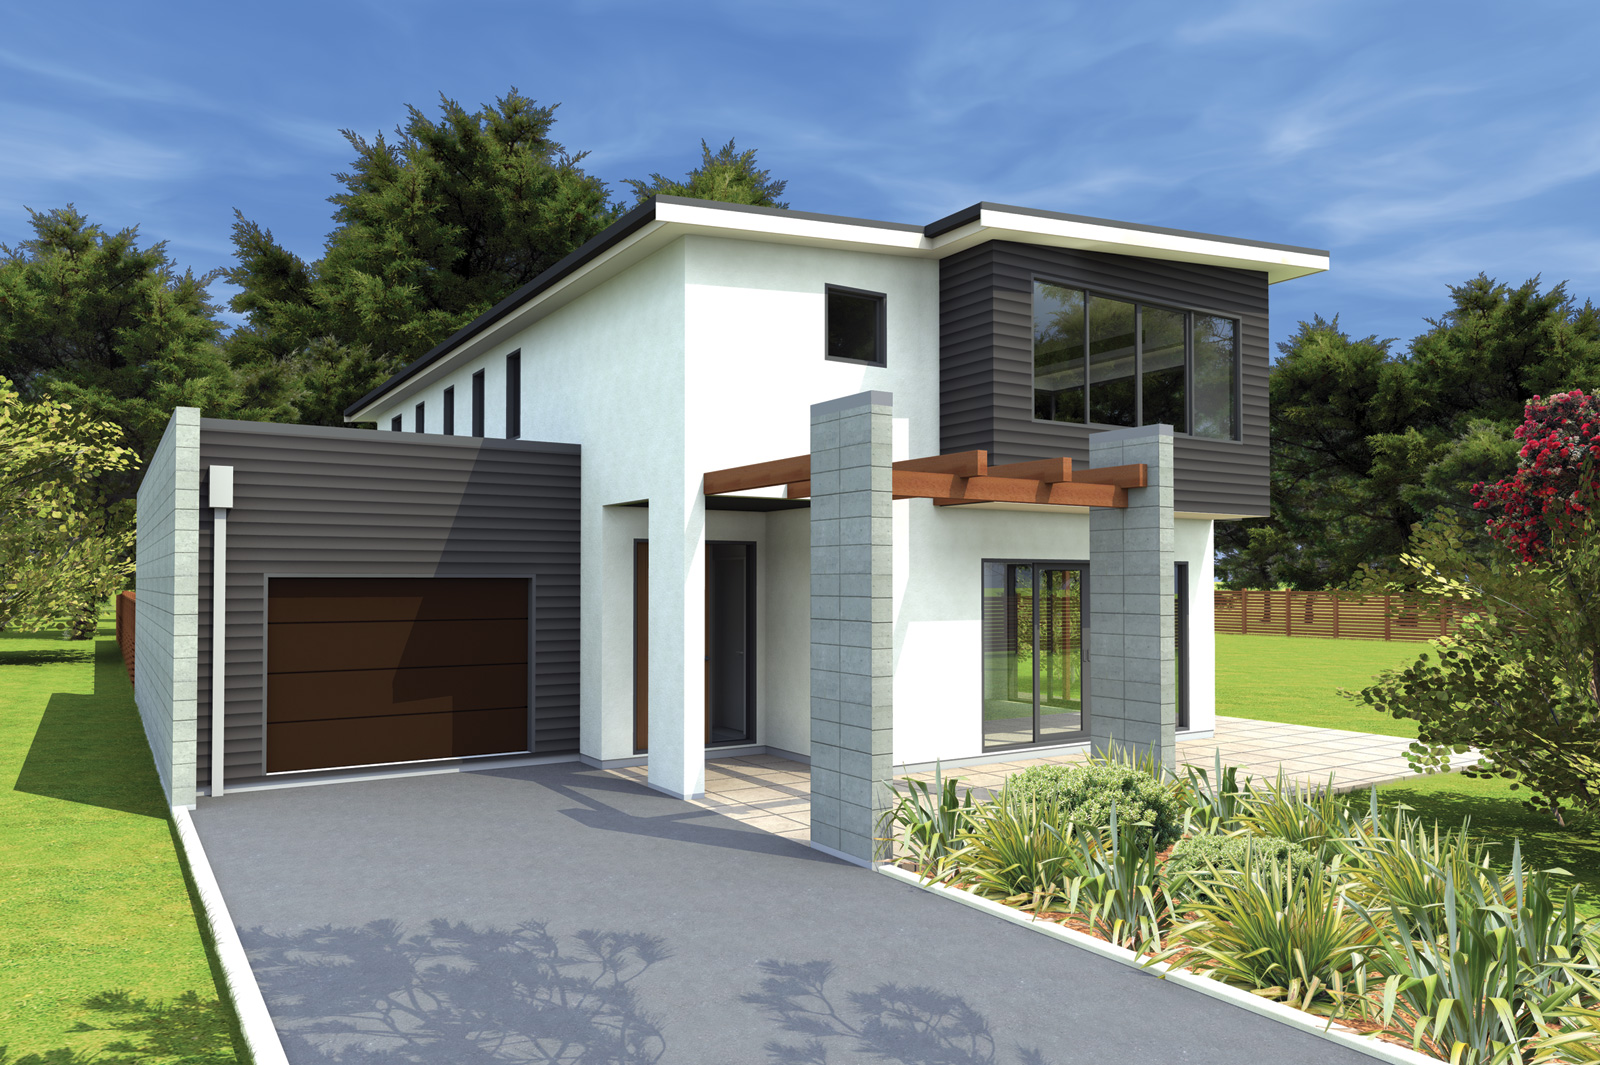 New home designs latest new modern homes designs new Modern home design ideas